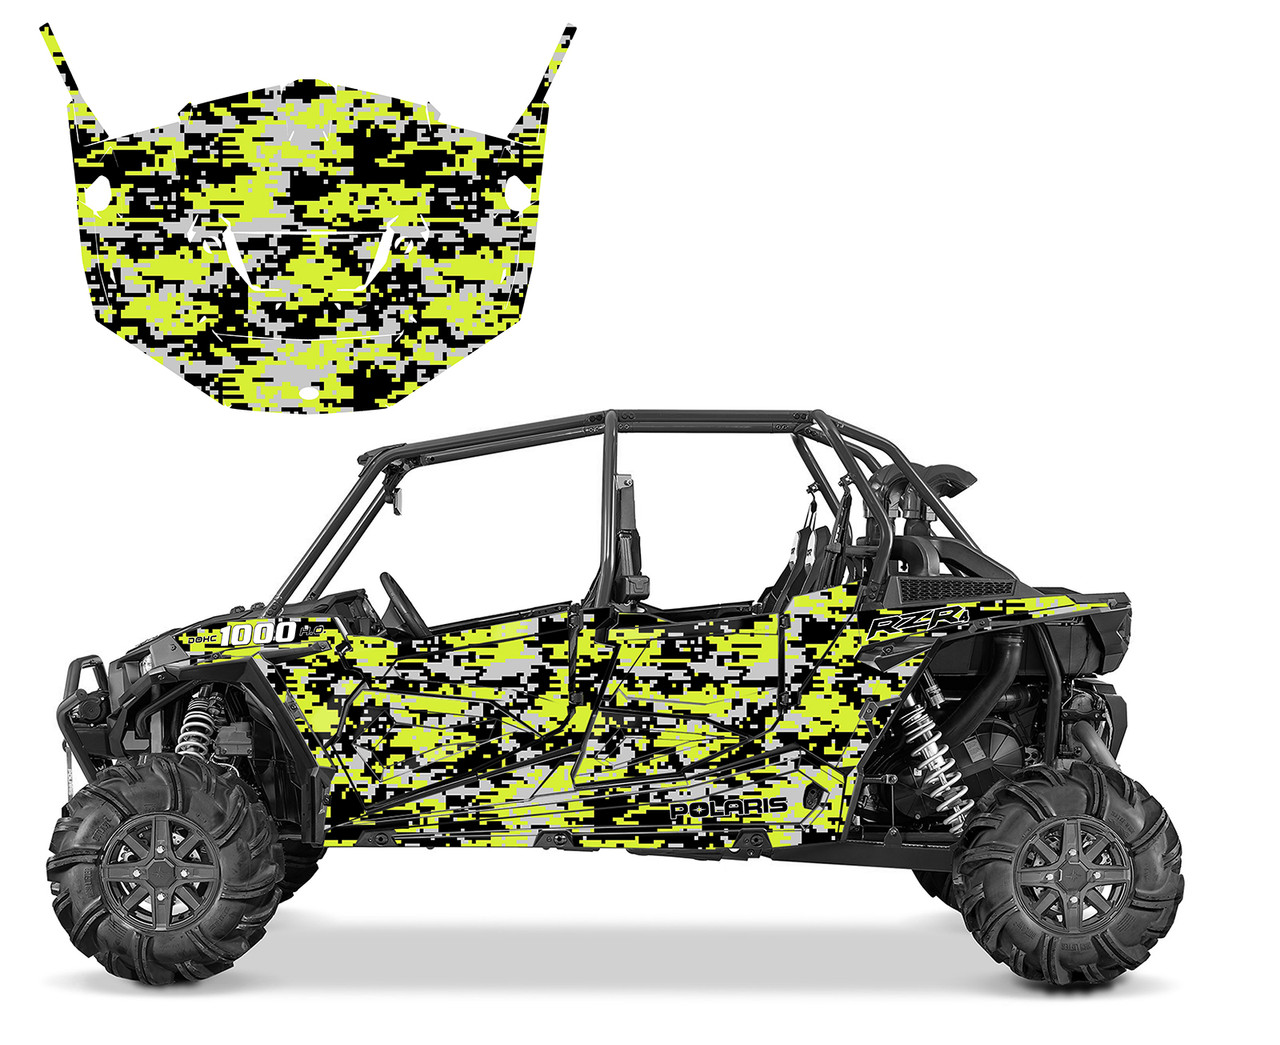 RZR4-1000 Neon Digital Camo graphics wrap kit